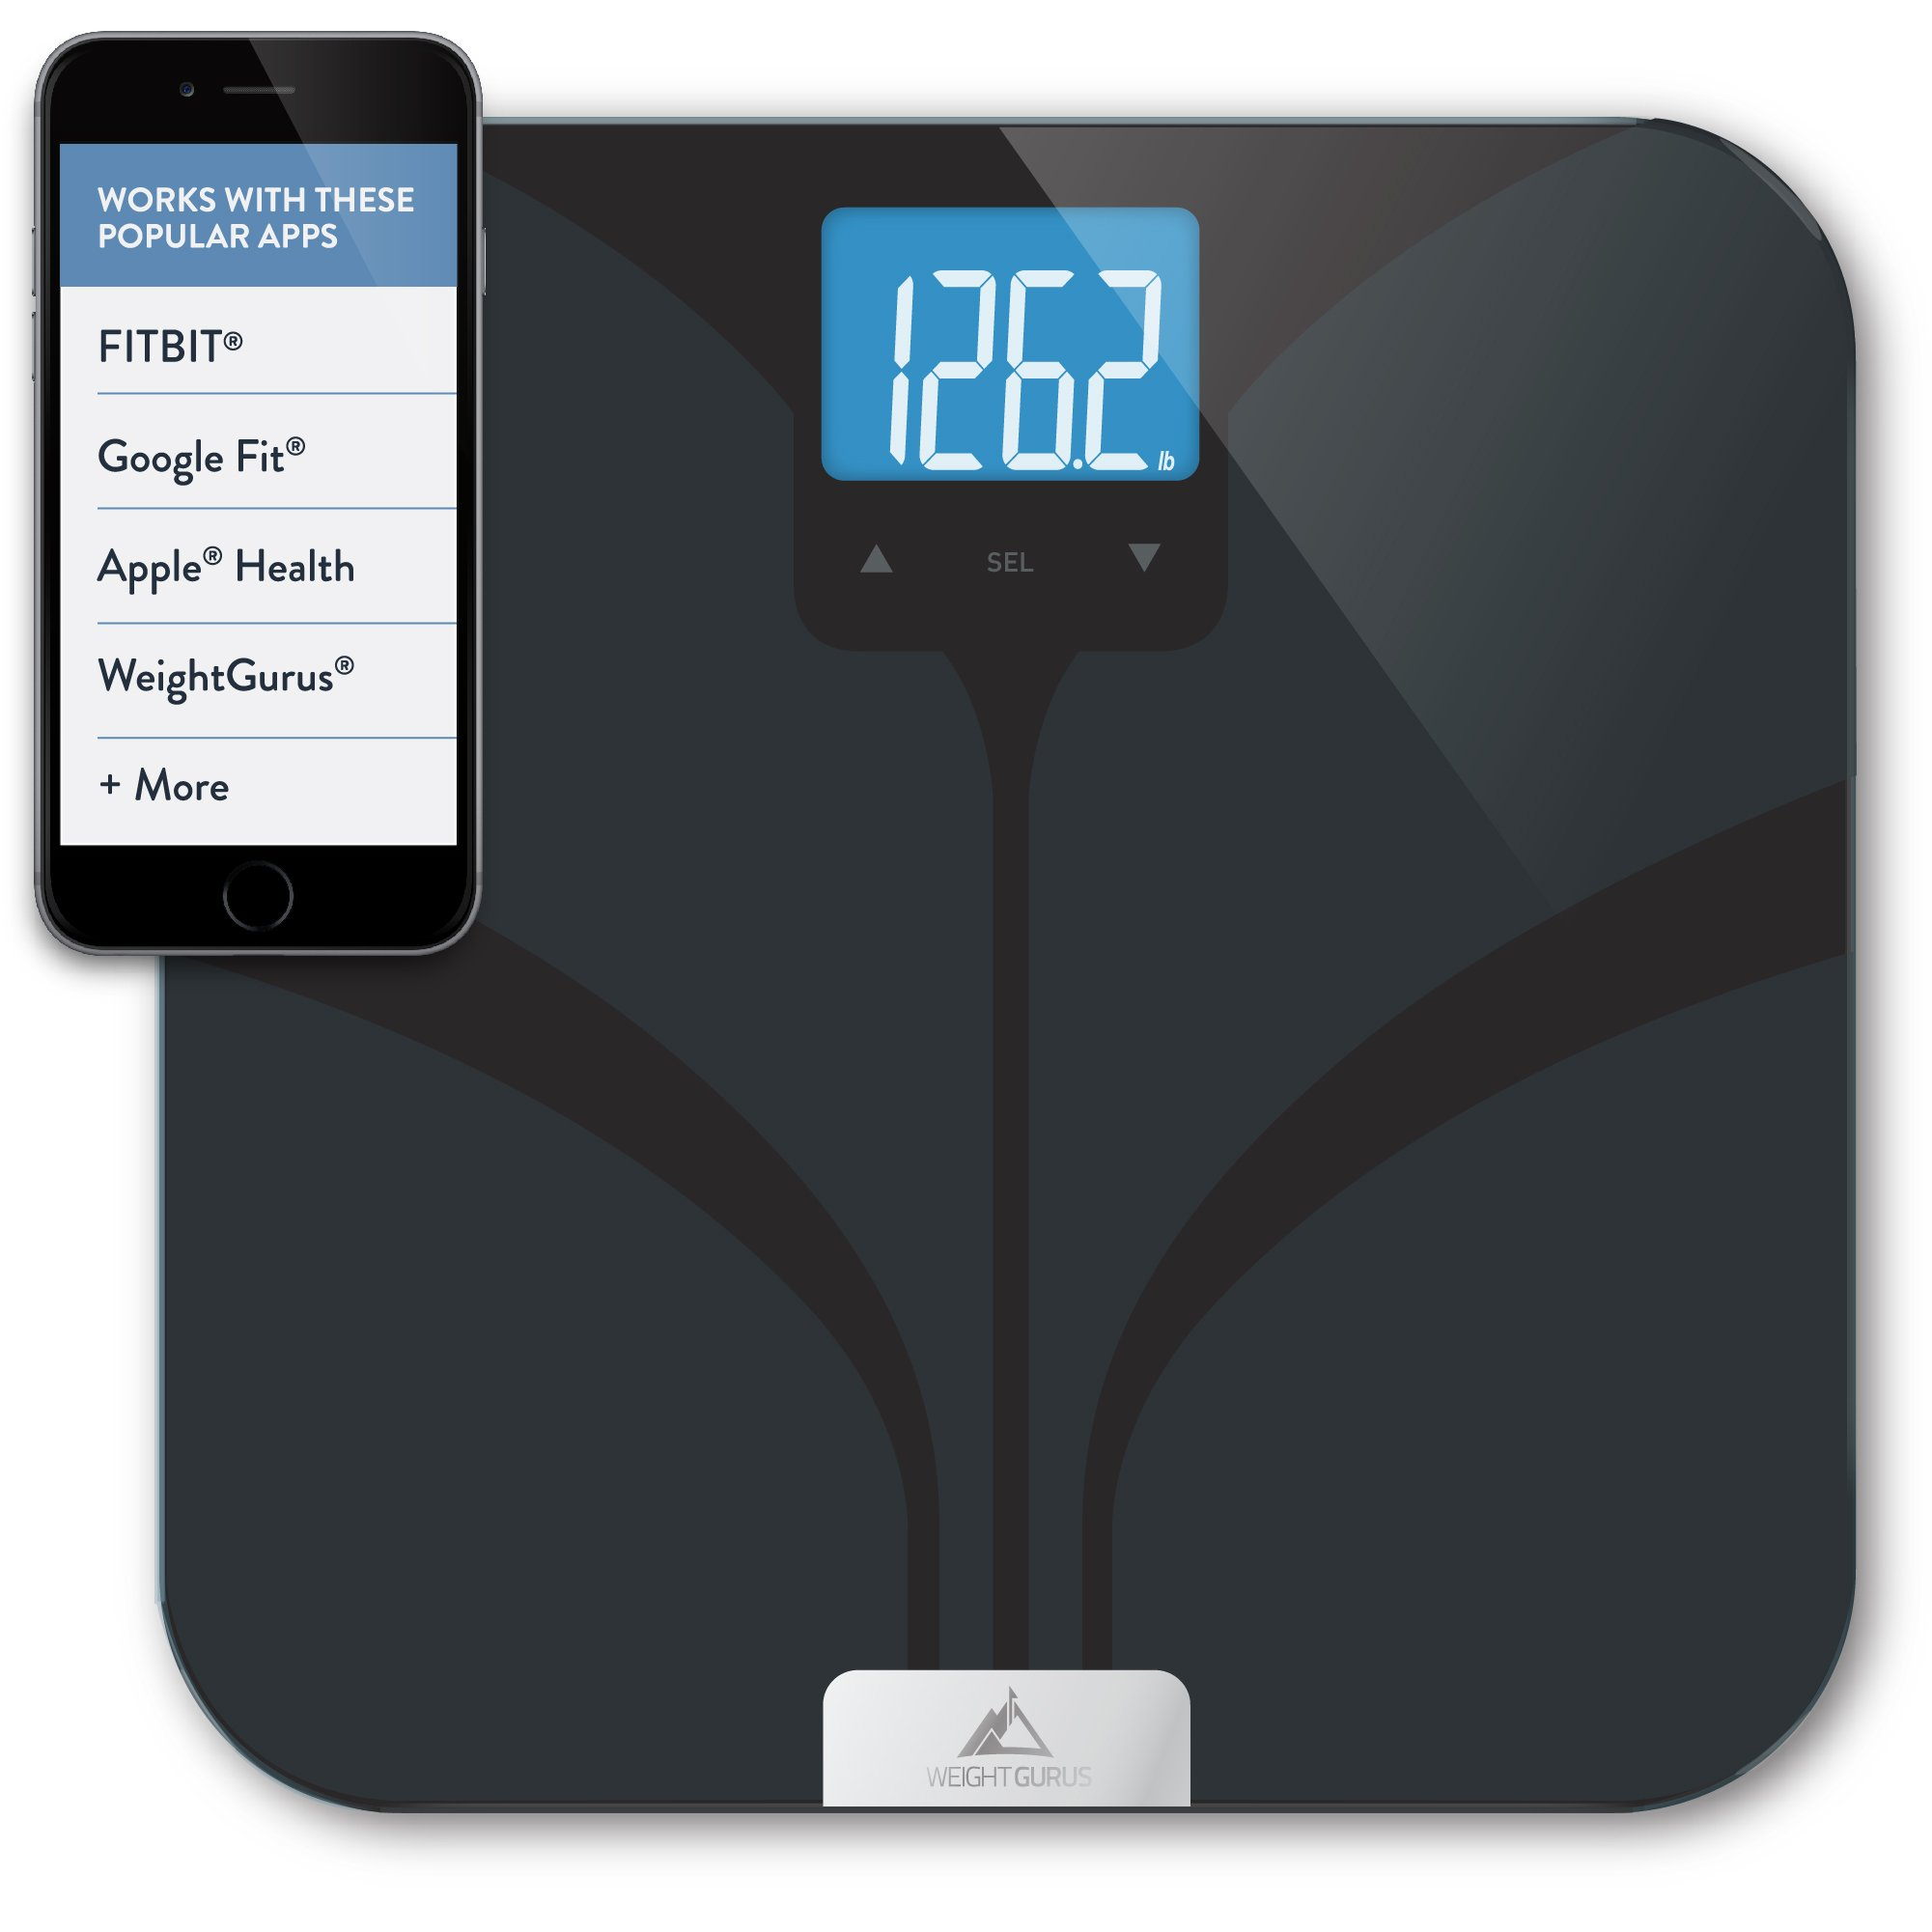 Bluetooth Smart Body Fat Scale by GreaterGoods (Certified Refurbished) Weight Gurus Line of Secure Connected Solution for your Data, including BMI, Body Fat, Muscle Mass, Water Weight, and Bone Mass